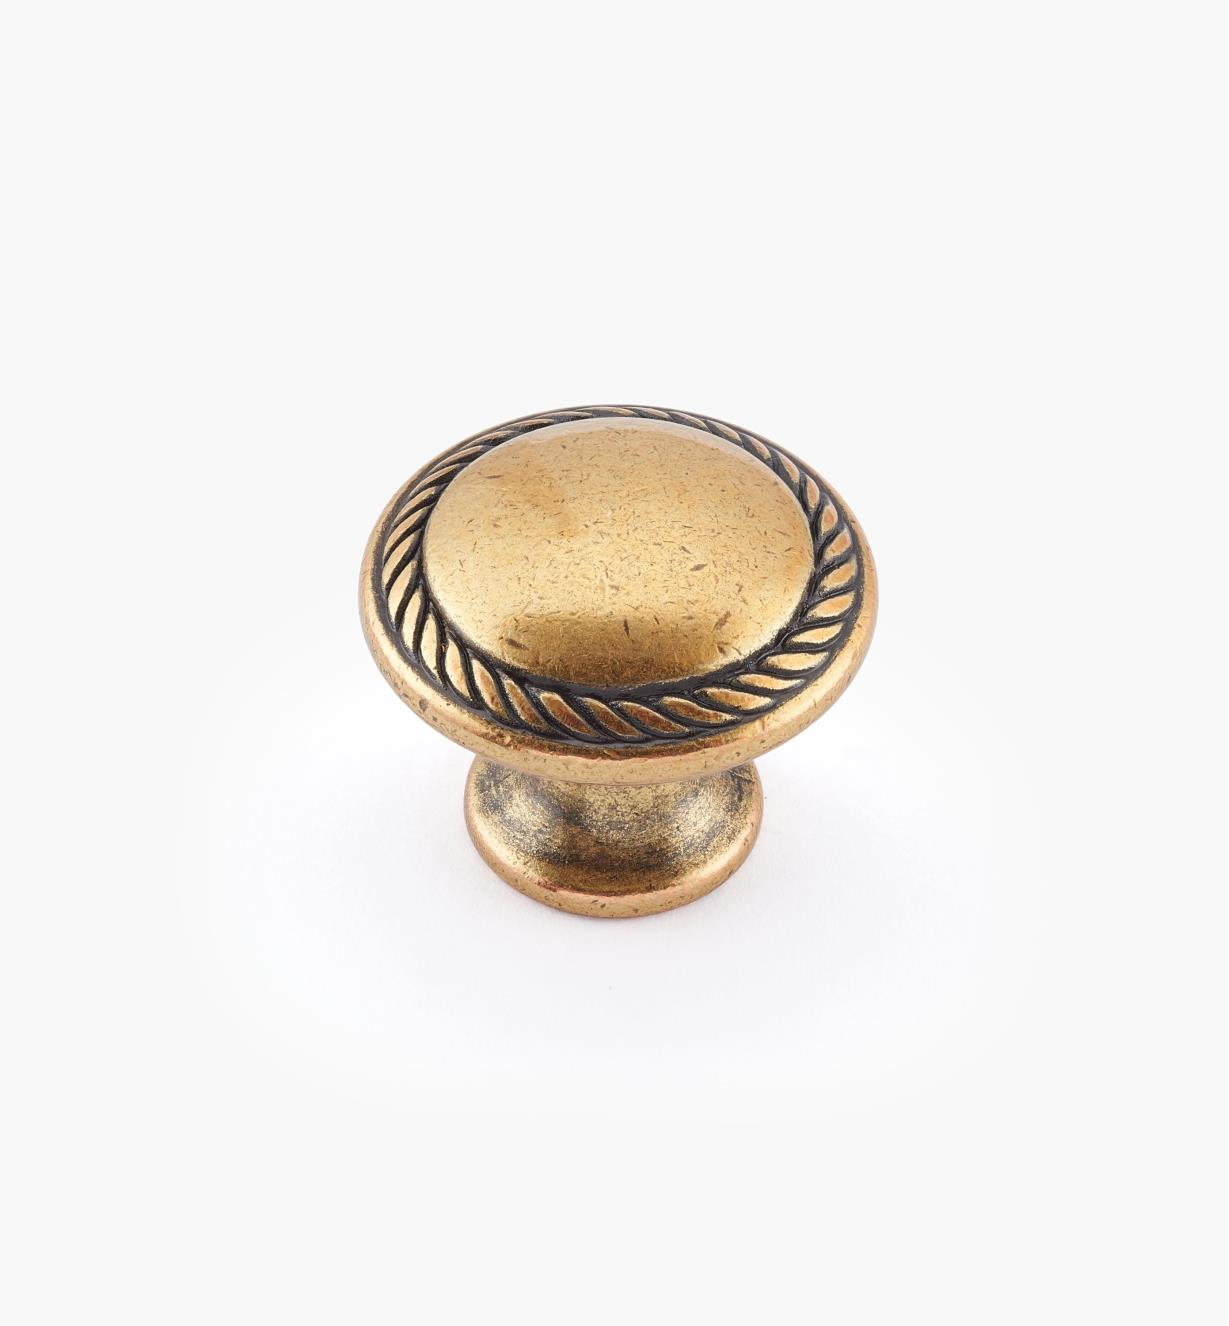 01A2252 - Small Burnished Bronze Roped Cast Knob